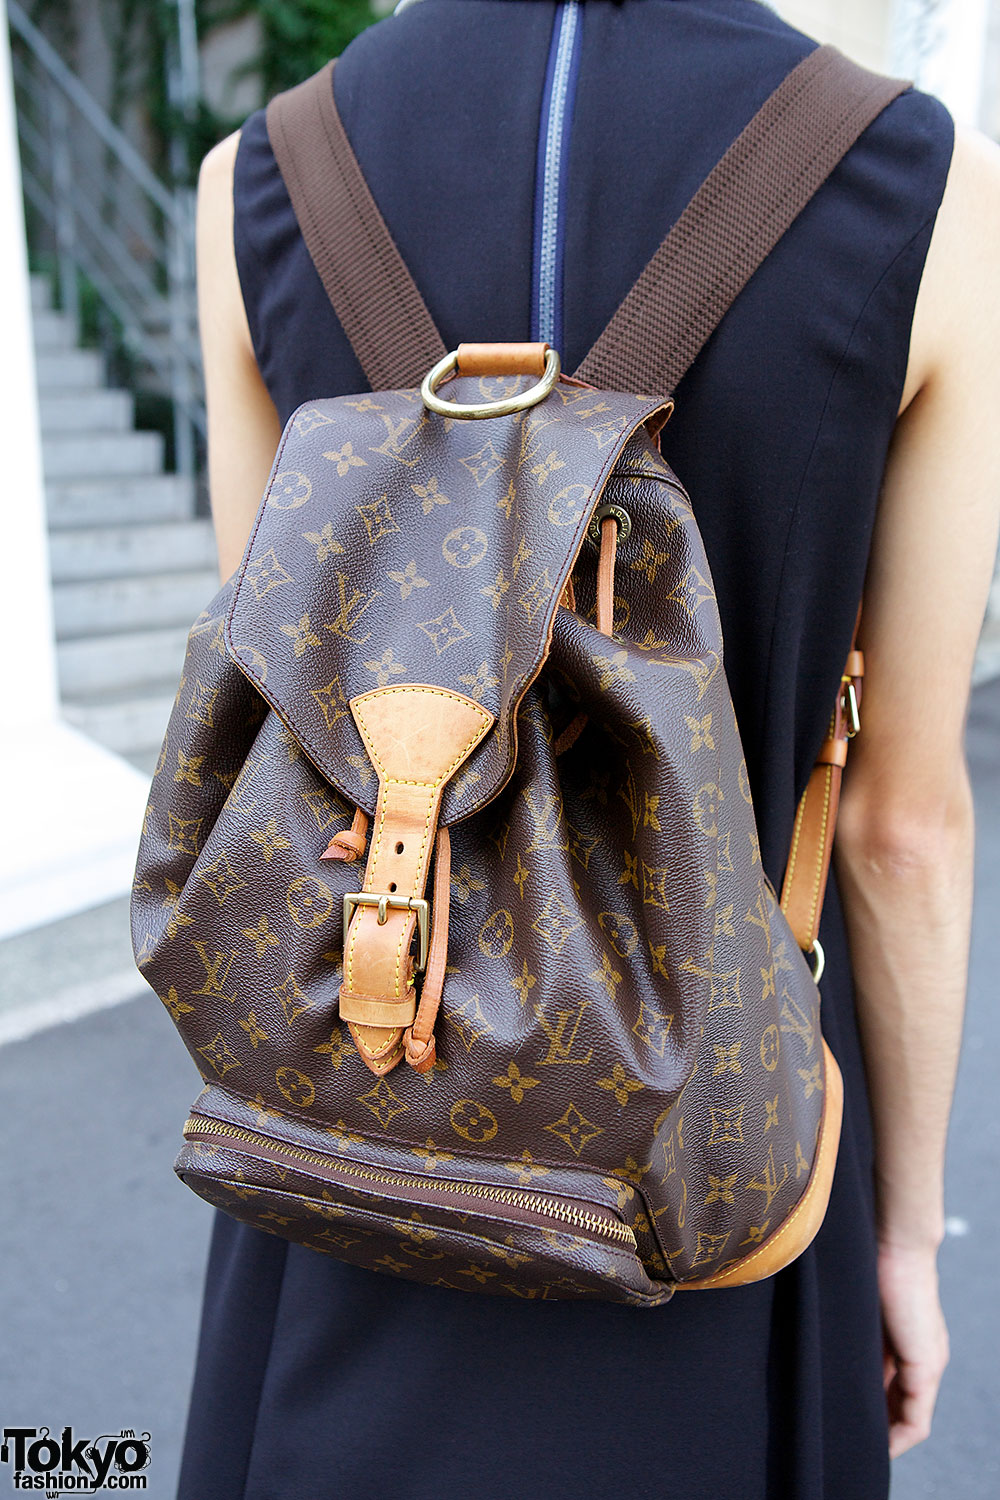 louis vuitton leather backpack � tokyo fashion news